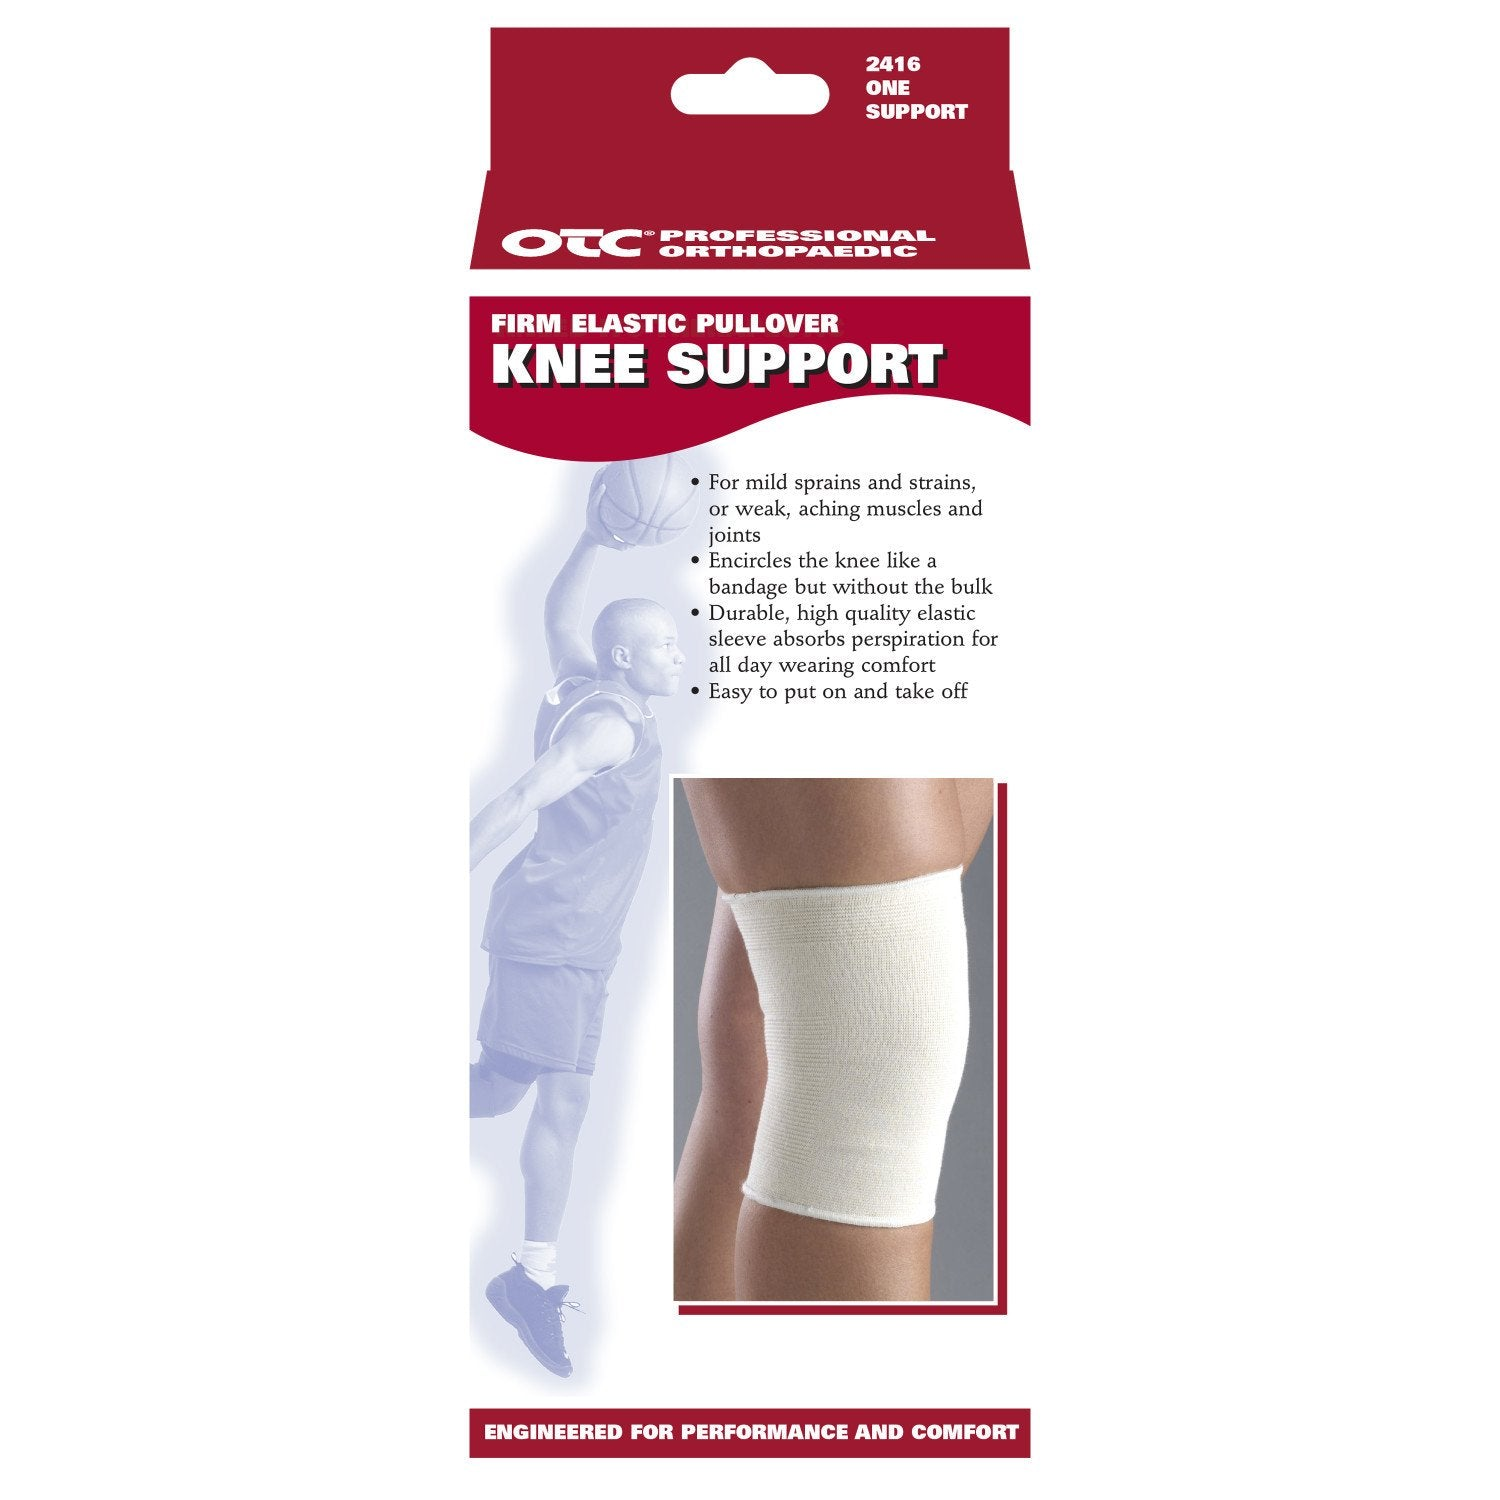 PULLOVER ELASTIC KNEE SUPPORT